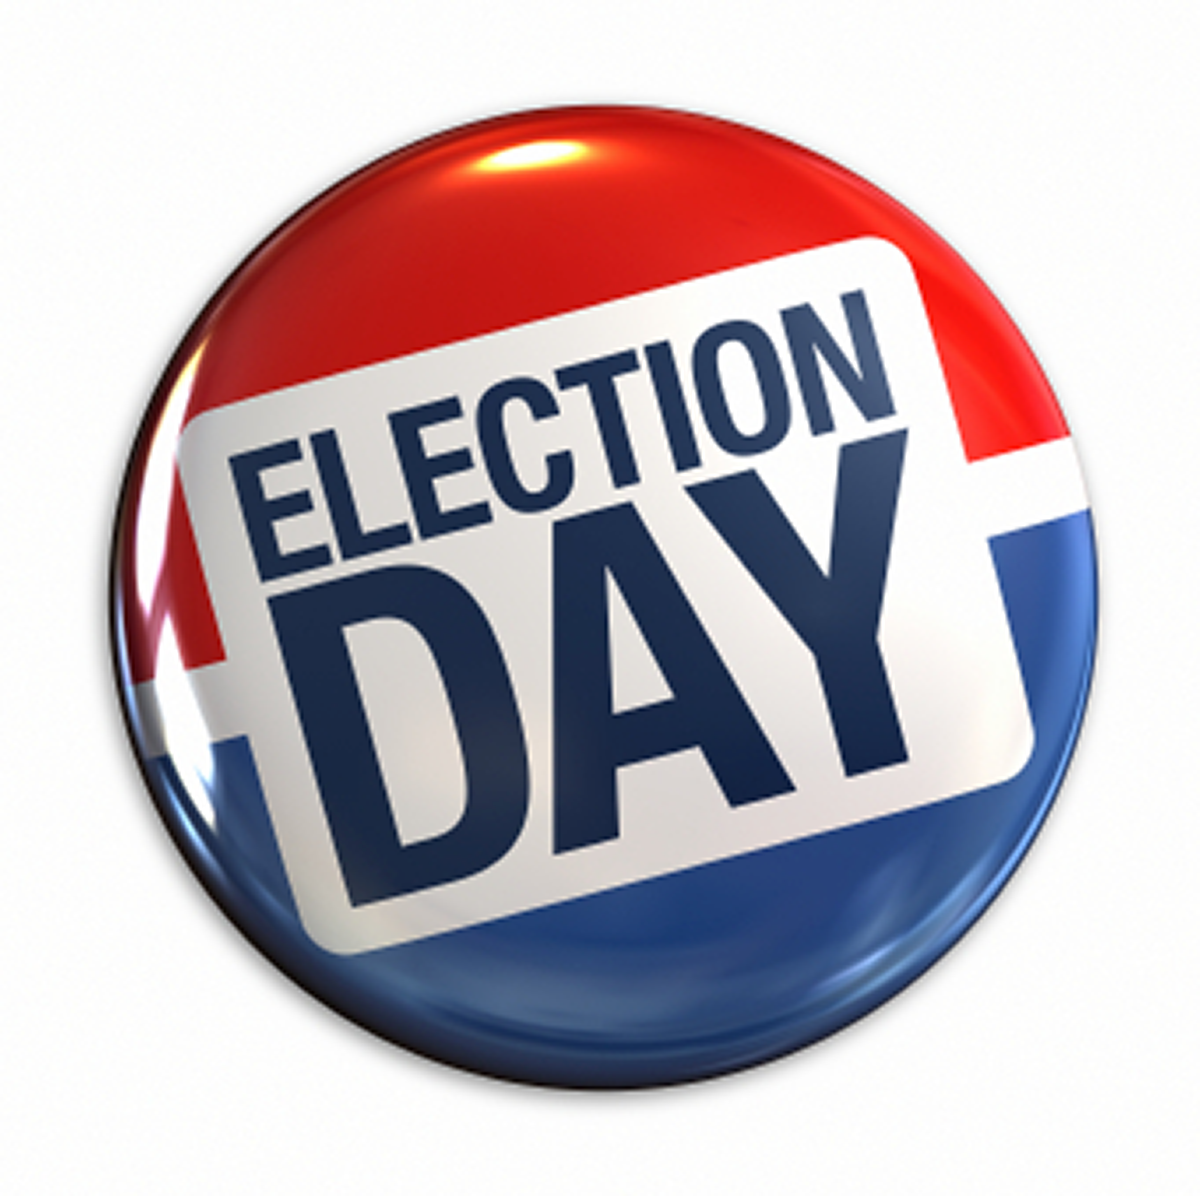 Election Day Clip Art   Beautiful Scenery Photography